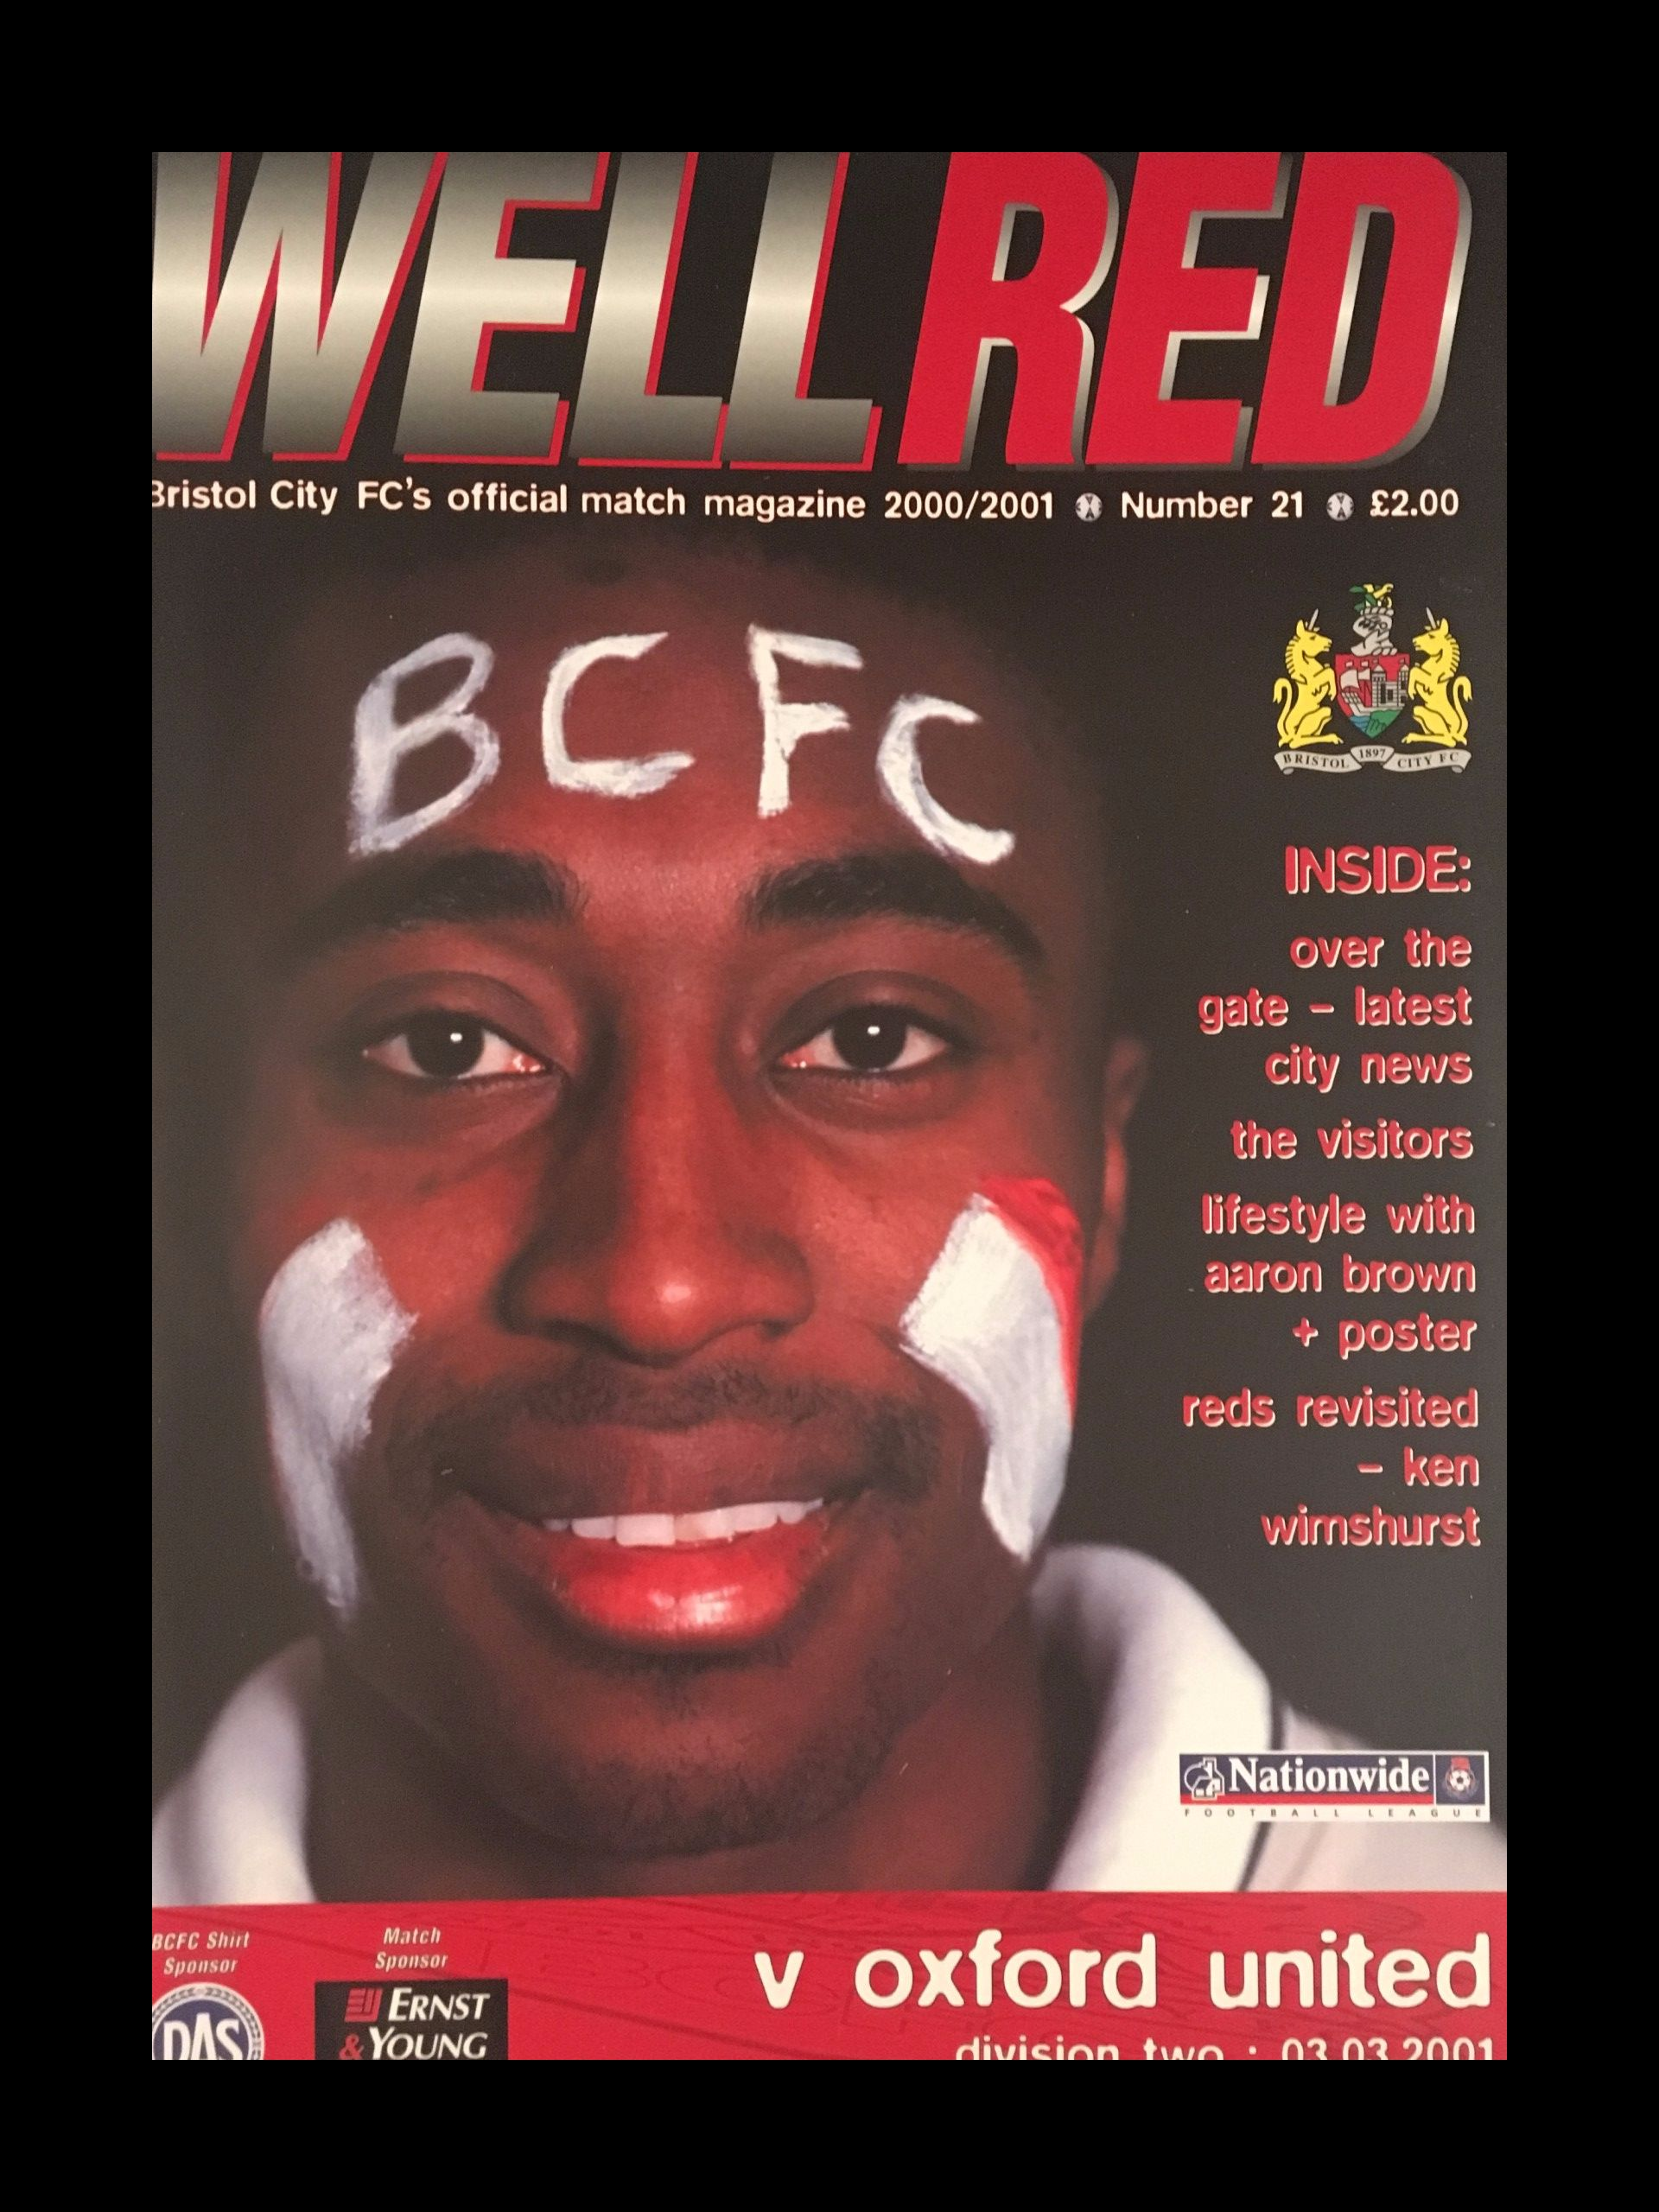 Bristol City v Oxford United 03-03-2001 Programme